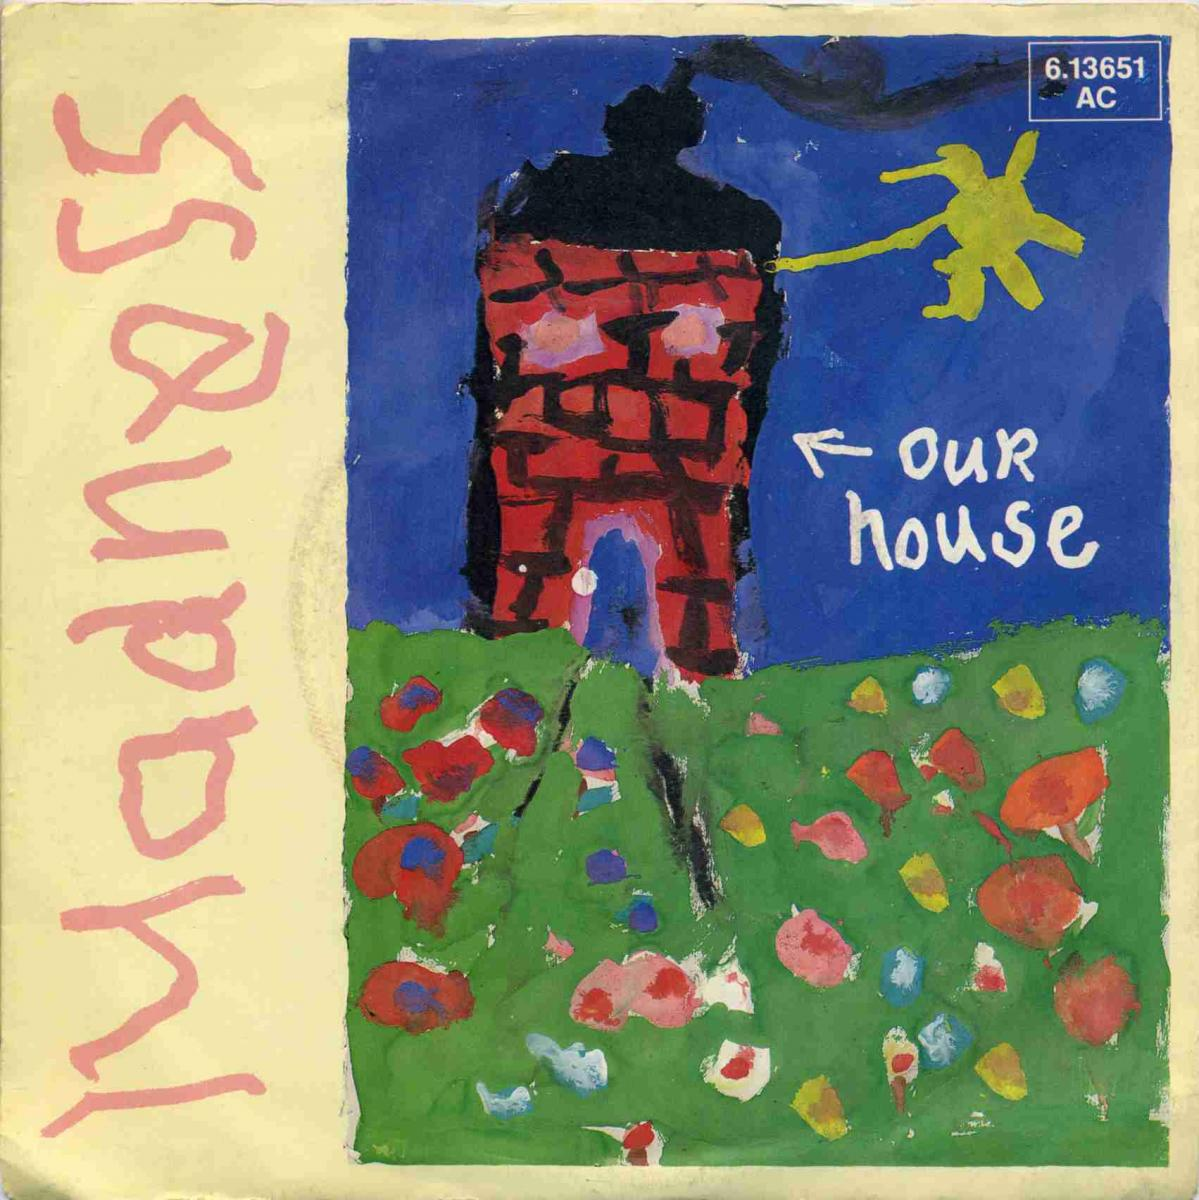 Vinyl-Single: <b><br>Madness: <br>Our House / Walking With Mr Wheeze </b> <br>Stiff Records 6.13651 AC, (P) 1982